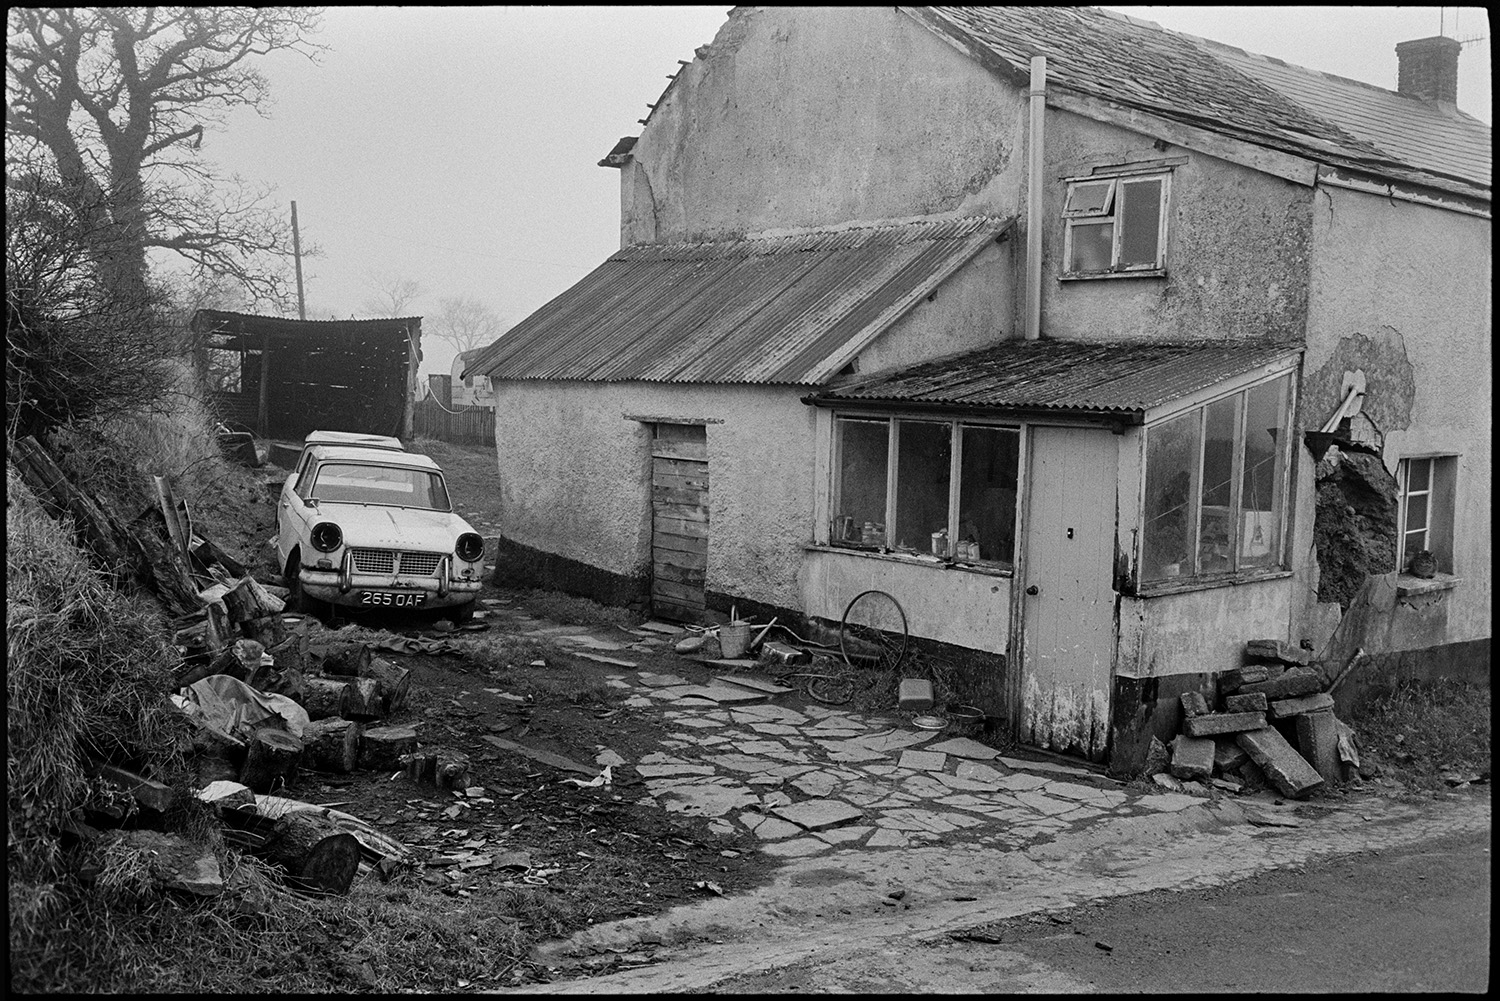 Yard of run down cottage with derelict car. <br /> [A derelict car parked next to a run down cottage near Winkleigh. Logs, a bicycle wheel, watering can and pile of stonework can be seen in the yard by the cottage. The cottage porch has a corrugated iron roof.]